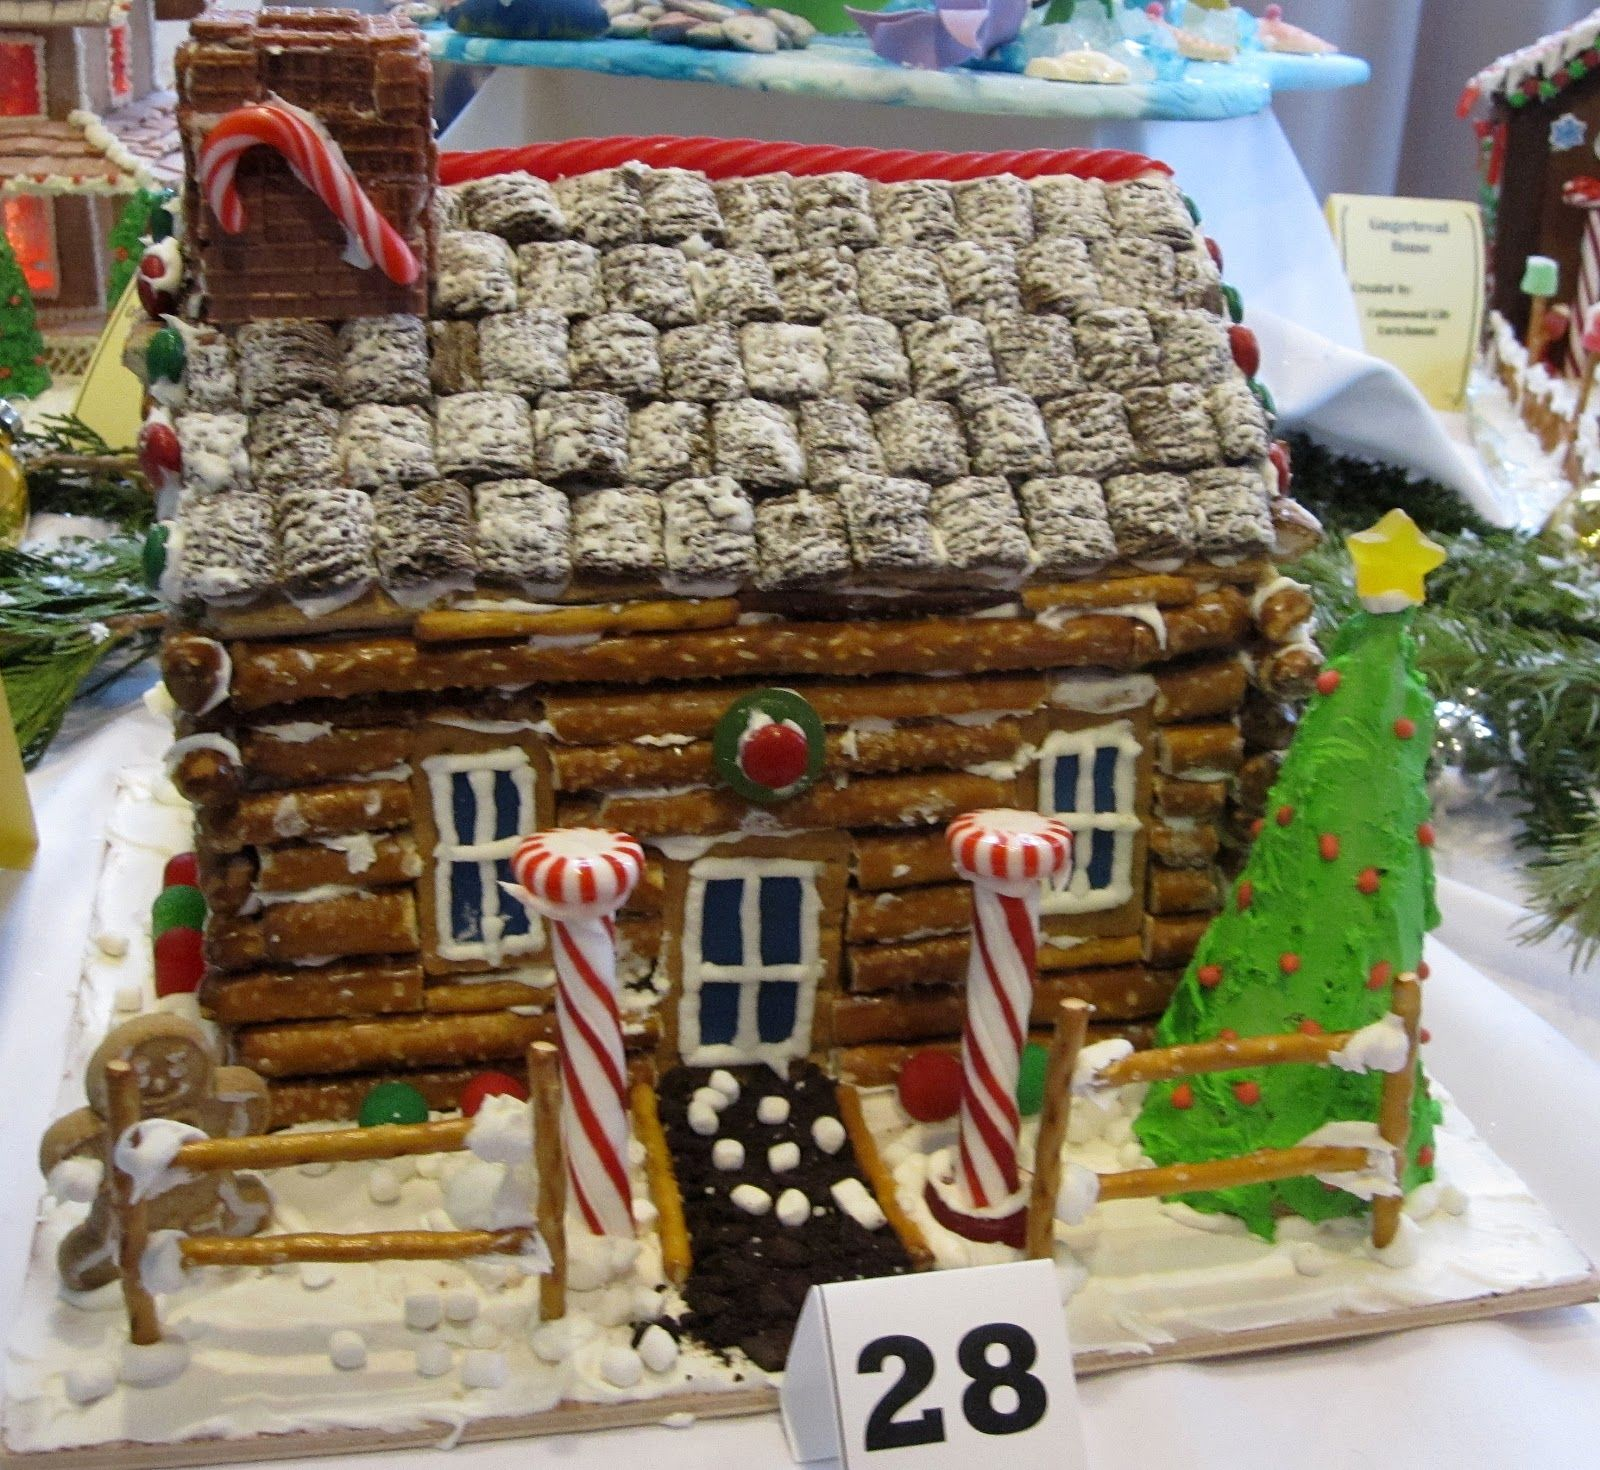 Fantastic A Pecan Roof Ideas A Pecan Roof Ideas Our Ginger Bread Year Gingerbread House Our Ginger Bread Gingerbread House Ideas Martha Stewart Gingerbread House Ideas Candy Gingerbread House ideas Gingerbread House Ideas